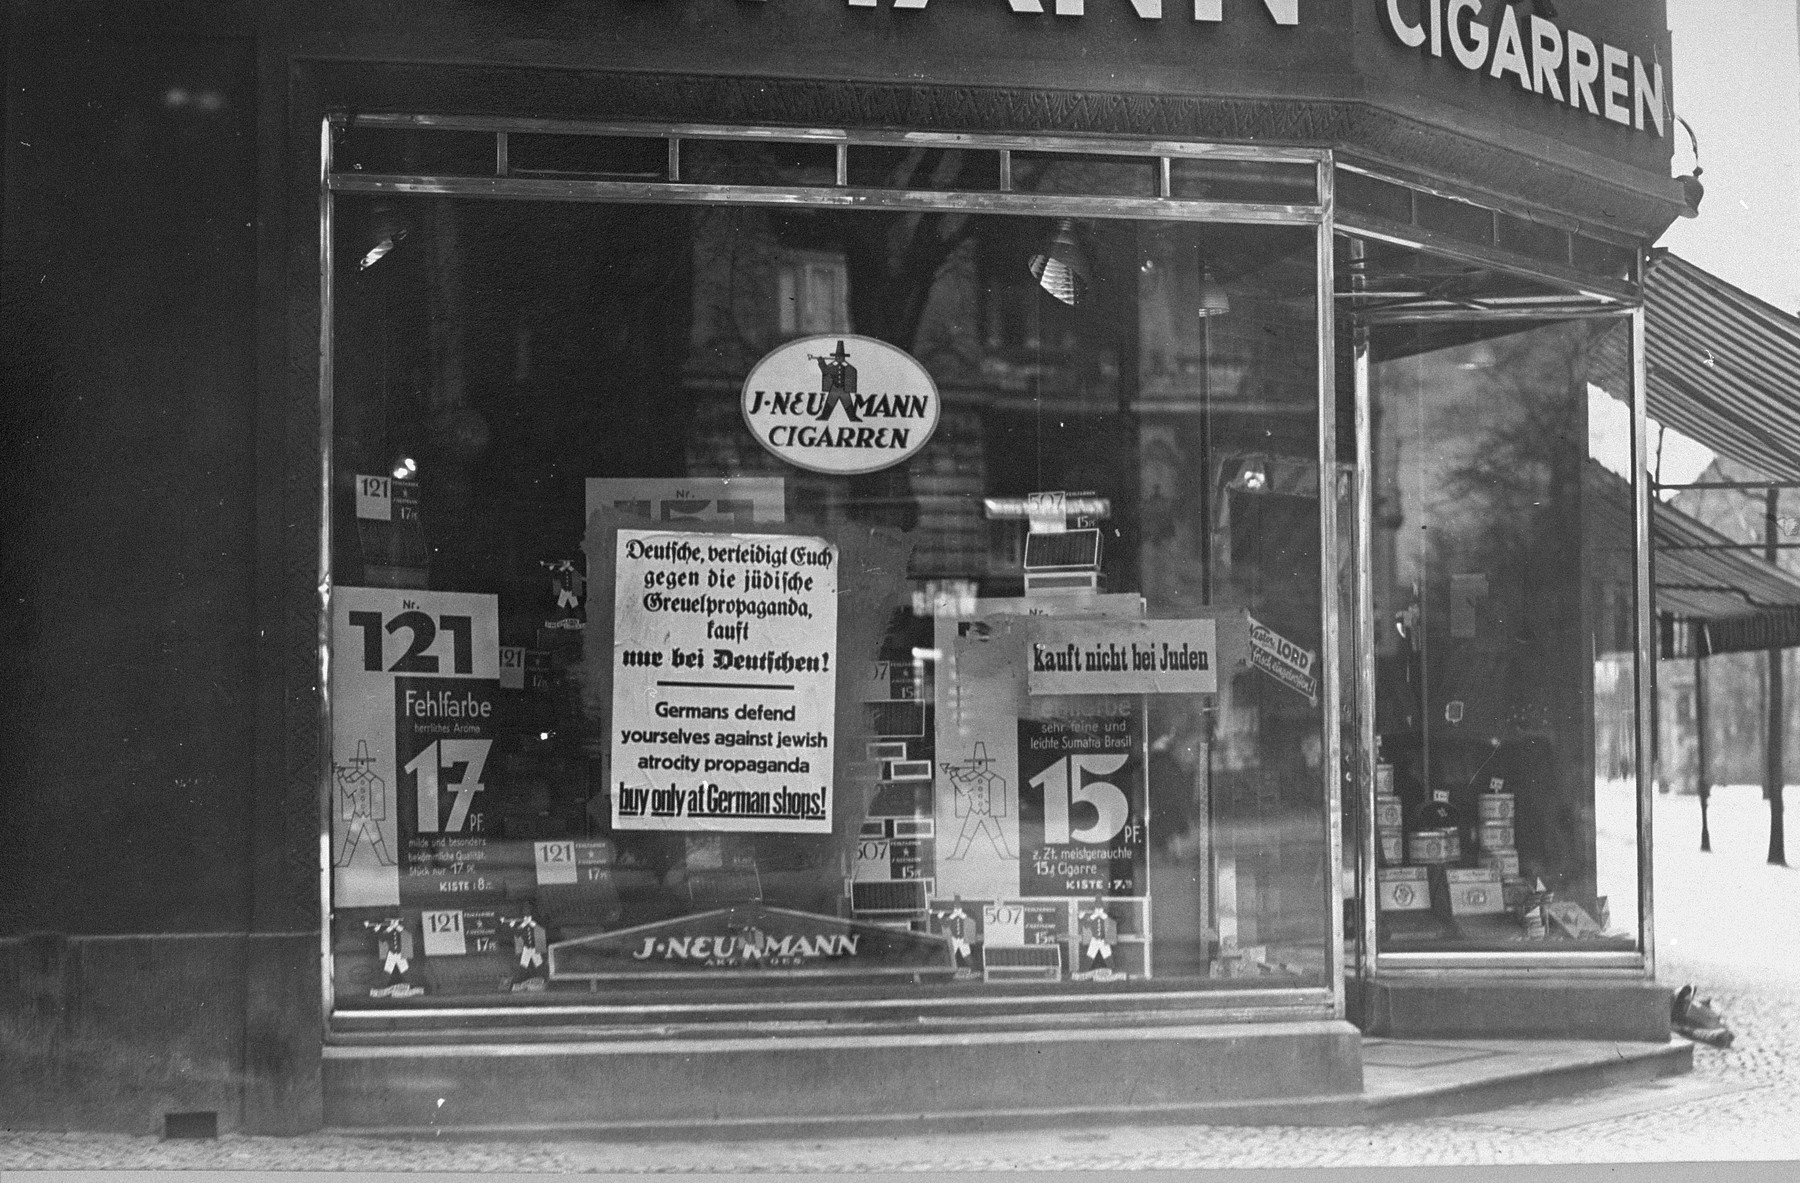 Boycott signs posted in the window of J. Neumann Cigarren, a Jewish-owned tobacco store in Berlin.